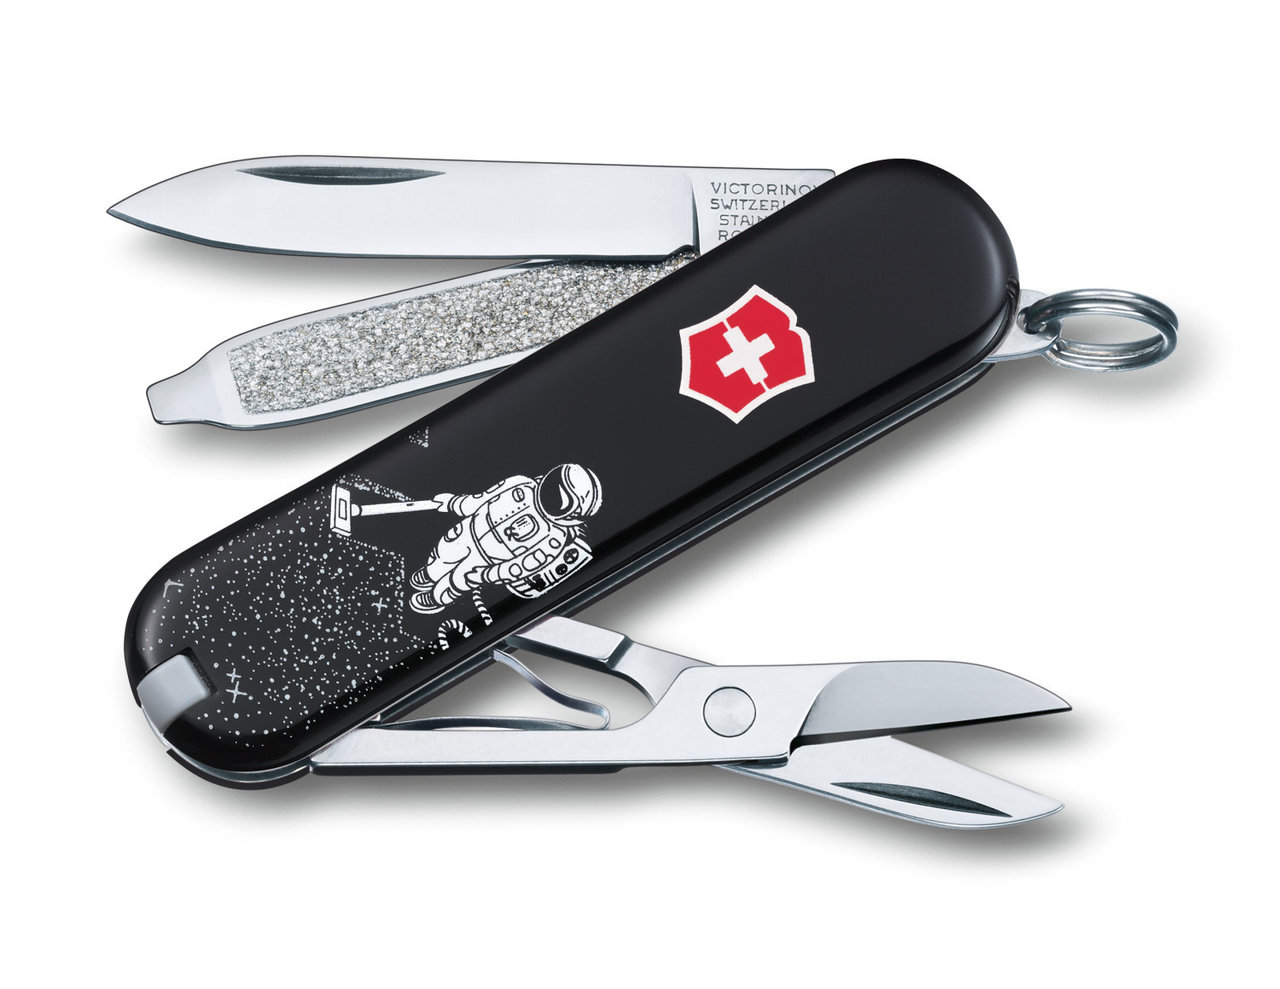 Limited Edition 2014 Classic Victorinox Berlindeluxe